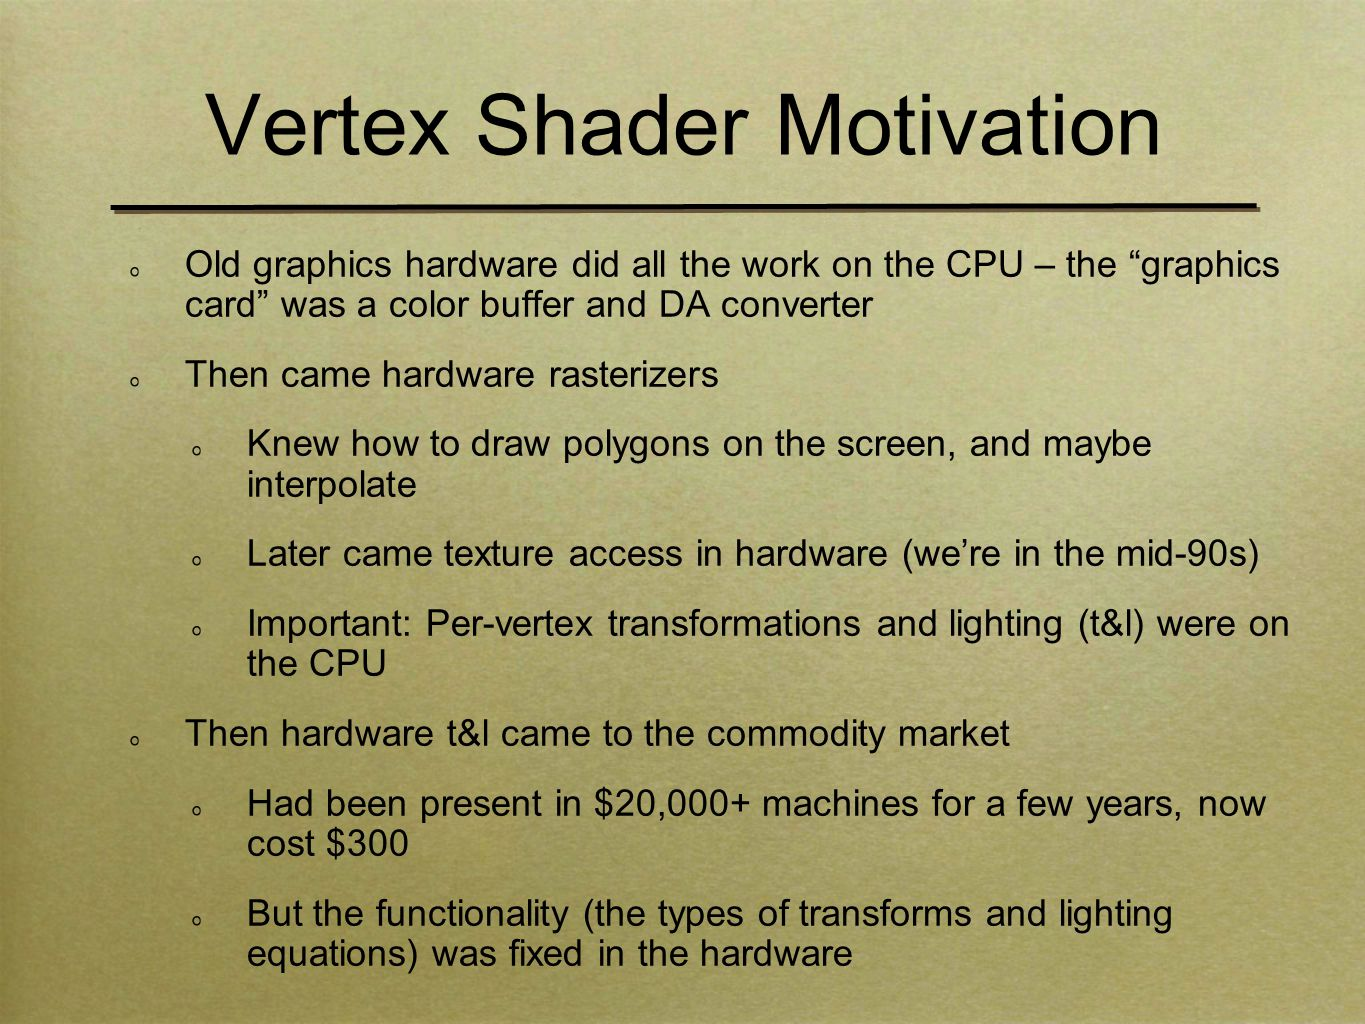 Vertex Shader Motivation Old graphics hardware did all the work on the CPU – the graphics card was a color buffer and DA converter Then came hardware rasterizers Knew how to draw polygons on the screen, and maybe interpolate Later came texture access in hardware (we're in the mid-90s) Important: Per-vertex transformations and lighting (t&l) were on the CPU Then hardware t&l came to the commodity market Had been present in $20,000+ machines for a few years, now cost $300 But the functionality (the types of transforms and lighting equations) was fixed in the hardware